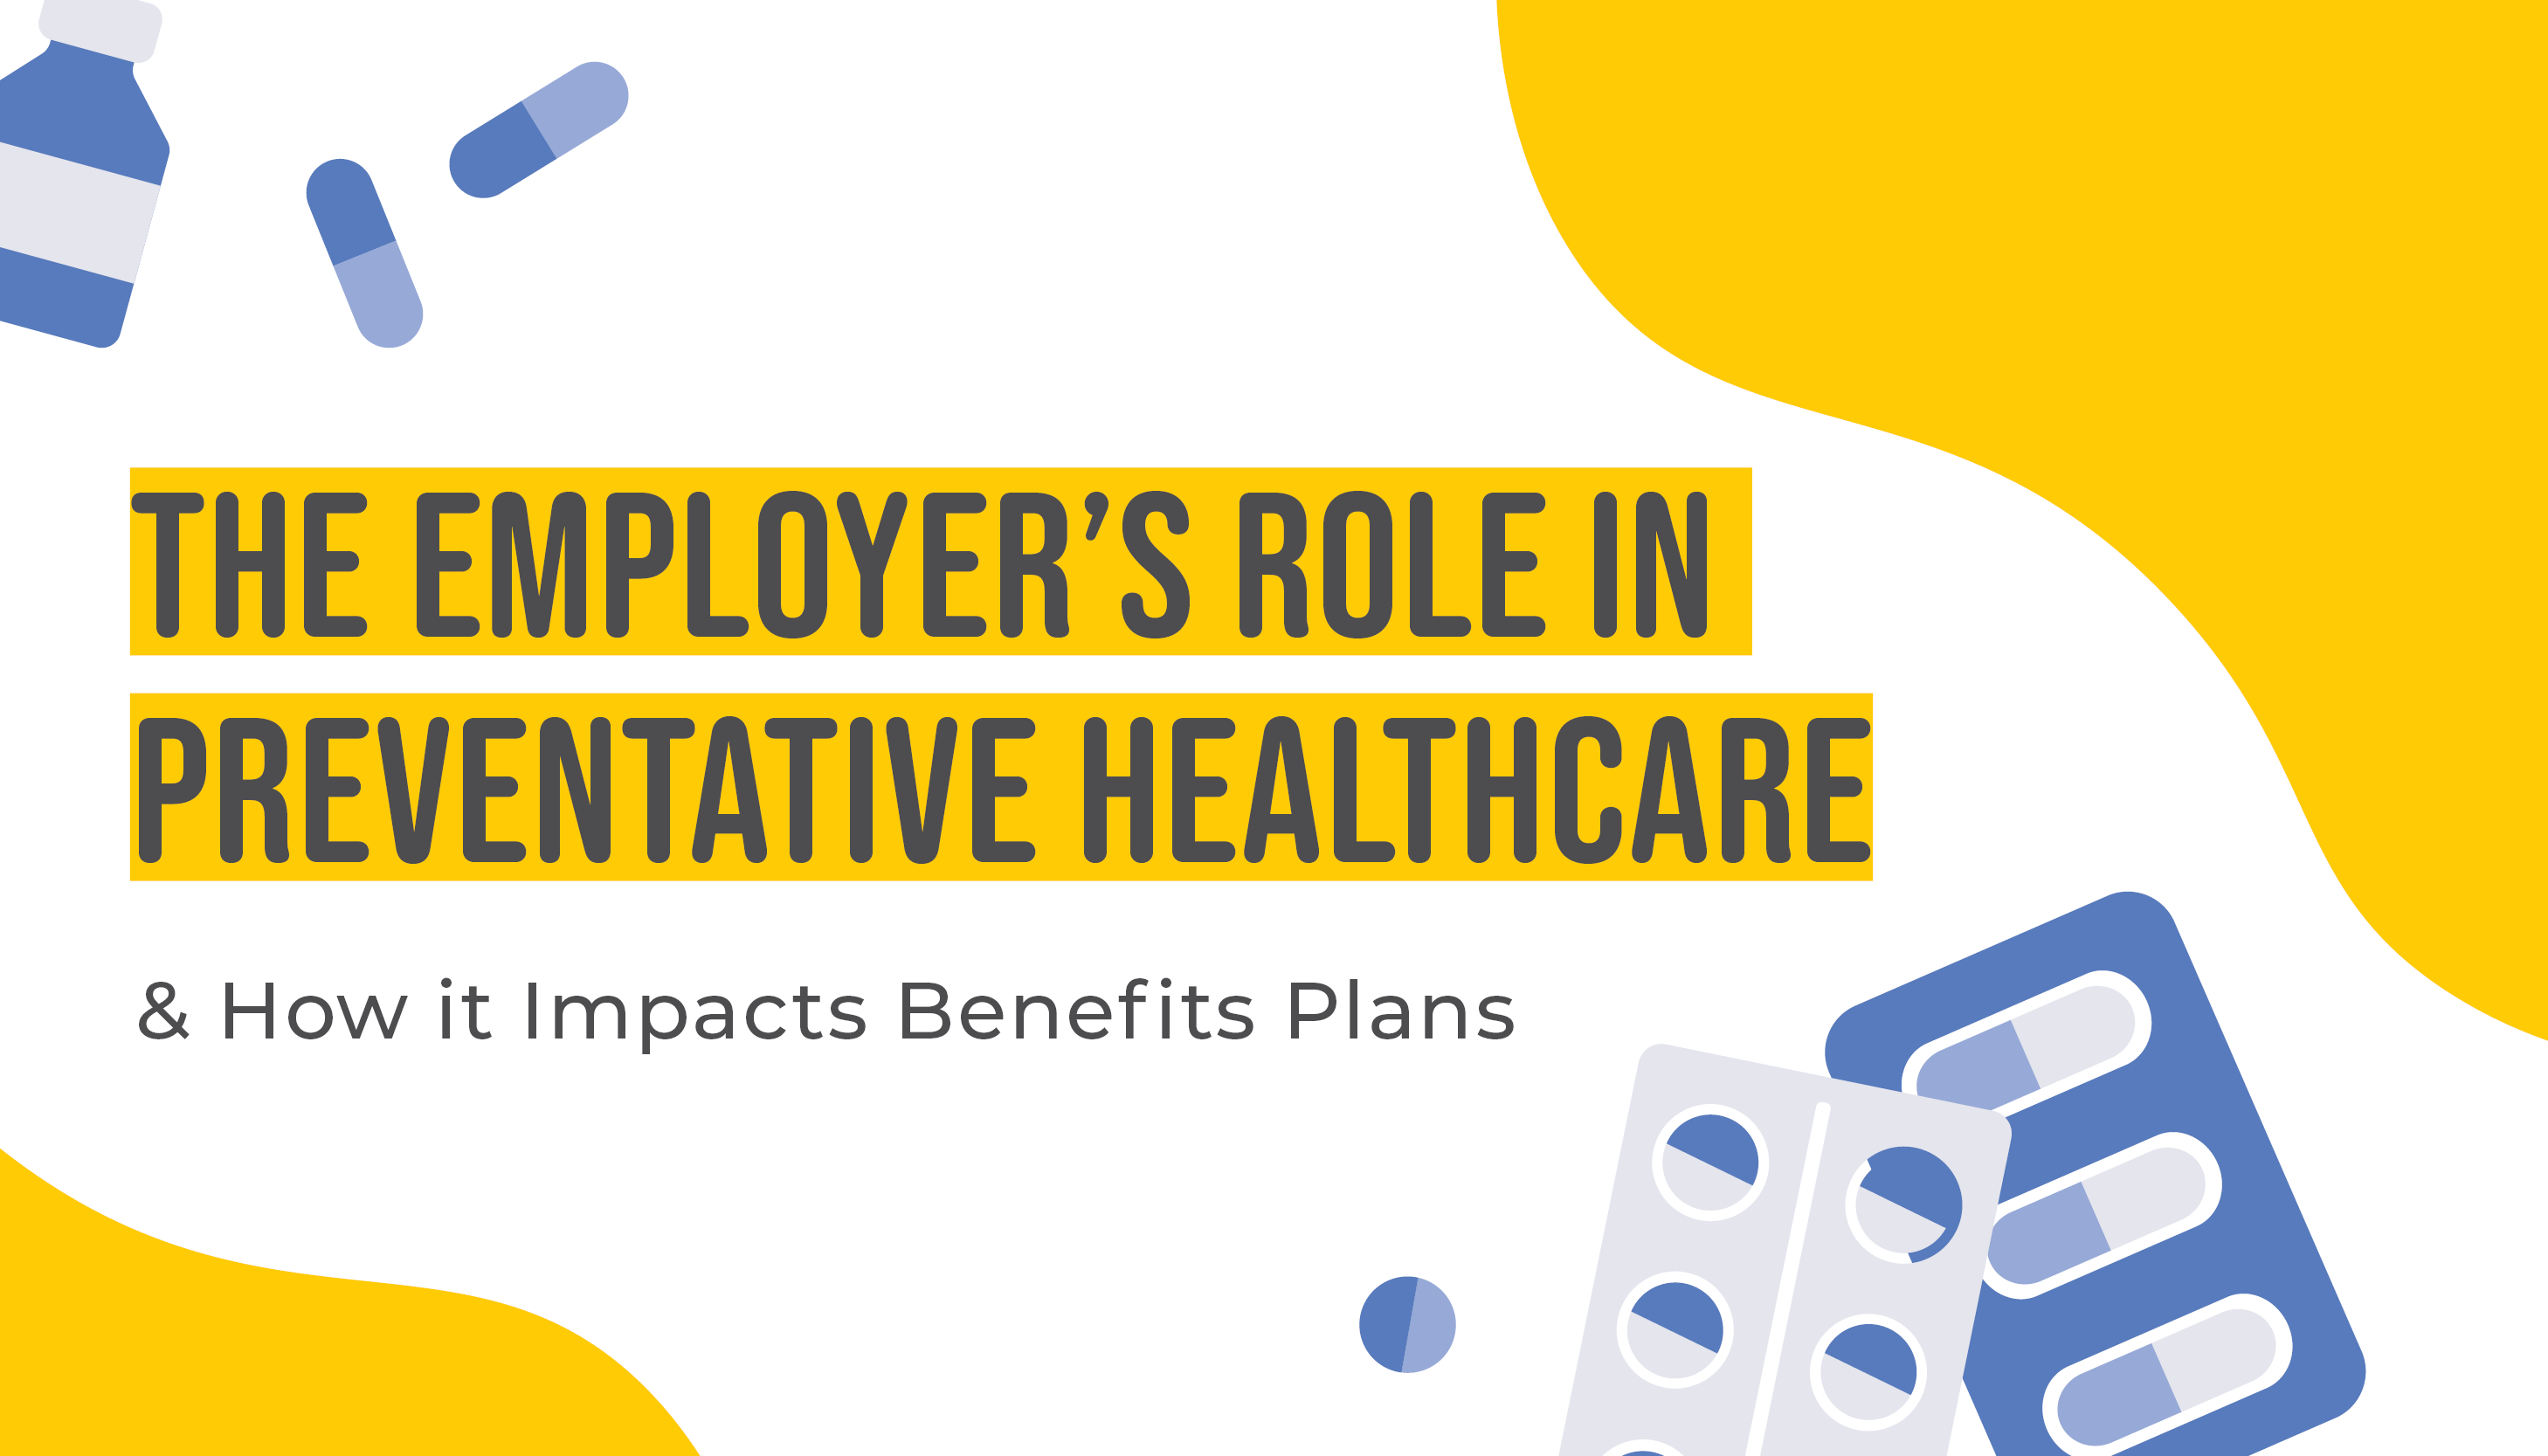 The Employer's Role in Preventative Healthcare & How it Impacts Benefits Plans | Benefits by Design